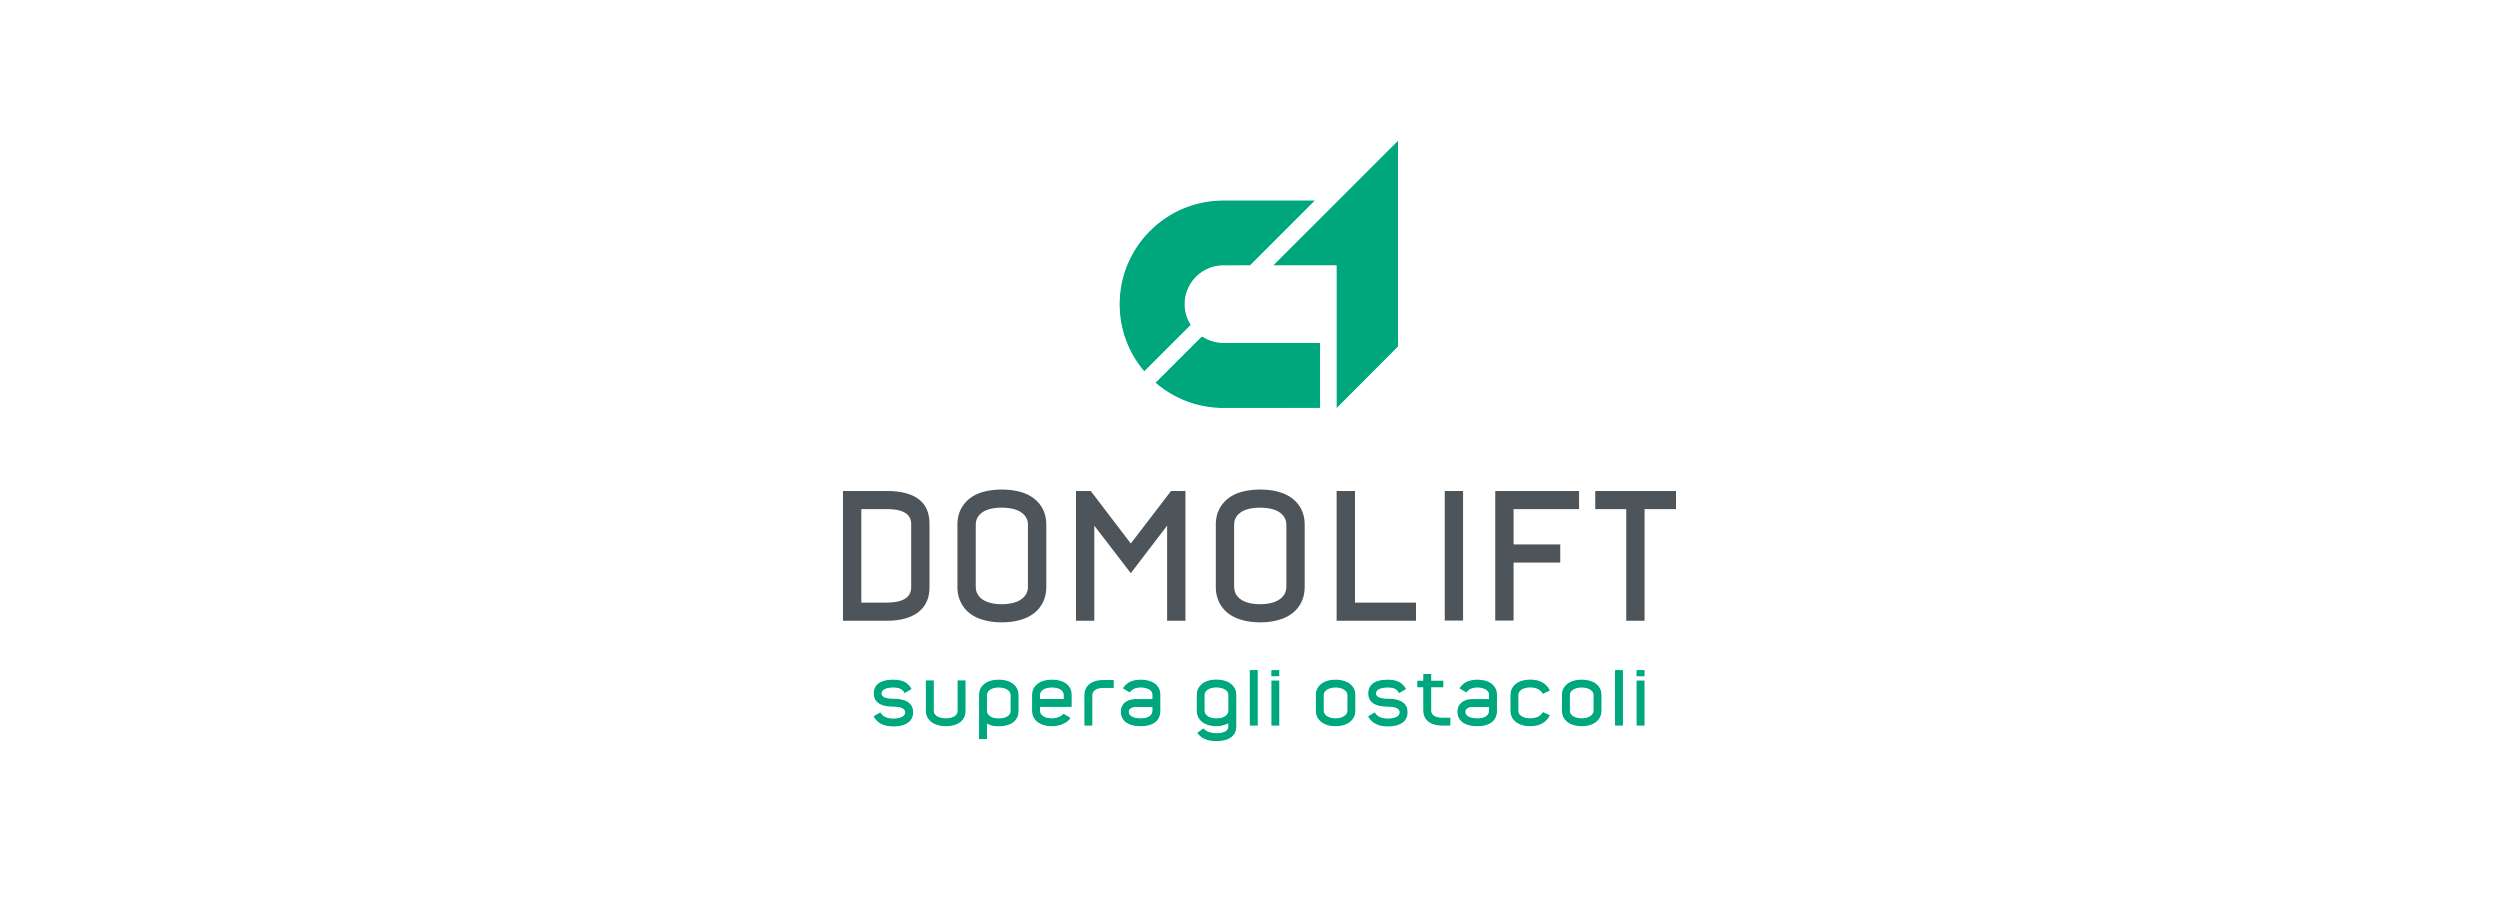 01_marchio_domolift_plus_communications_trento